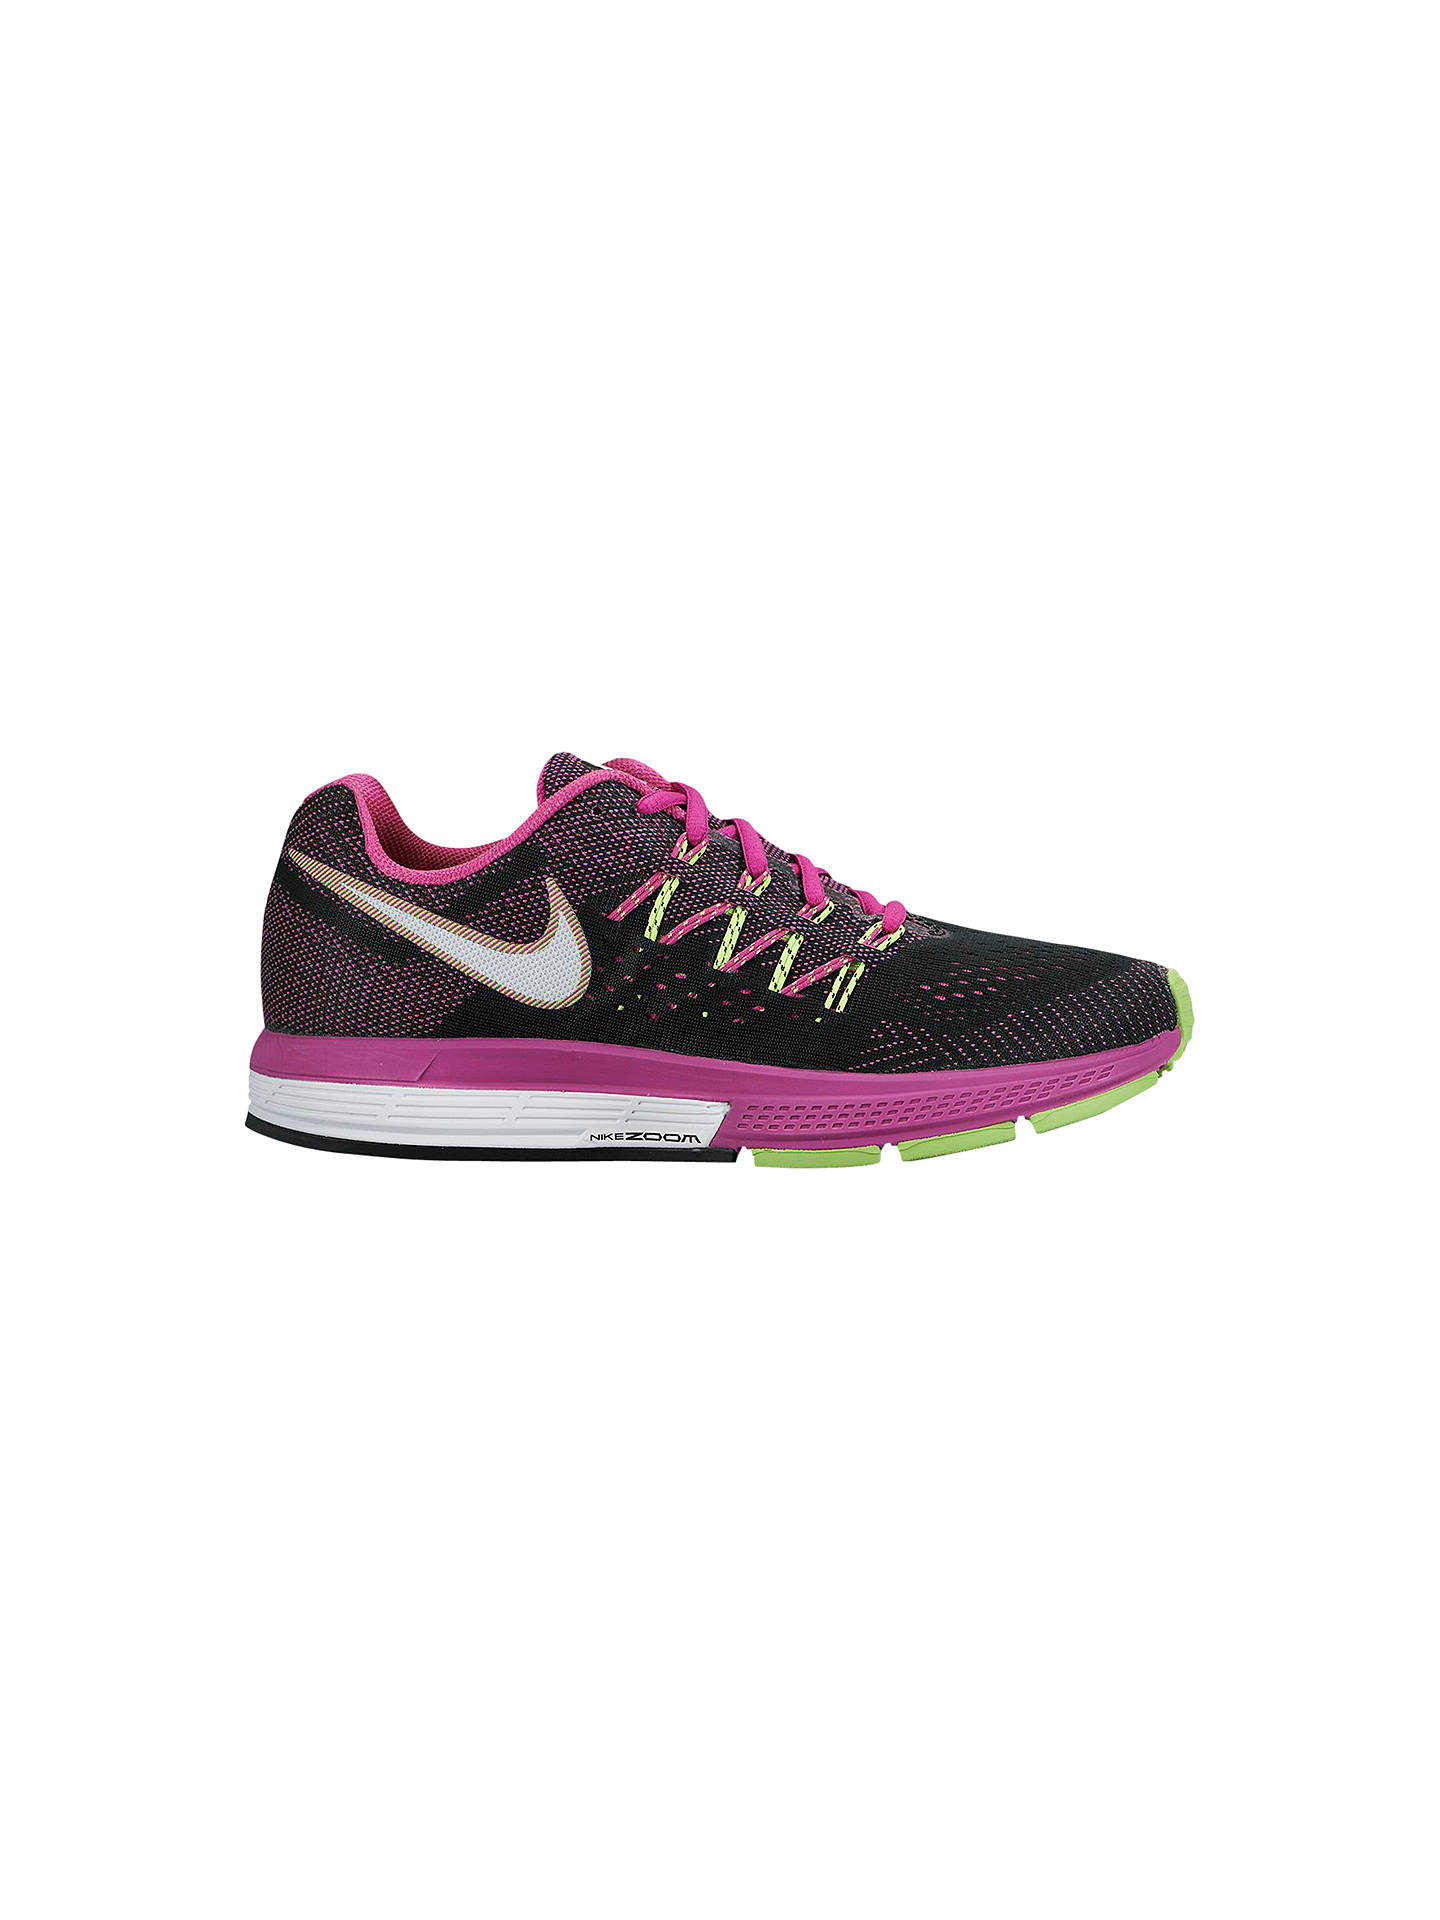 73000481cdb59 Nike Air Zoom Vomero 10 Women s Running Shoes at John Lewis   Partners